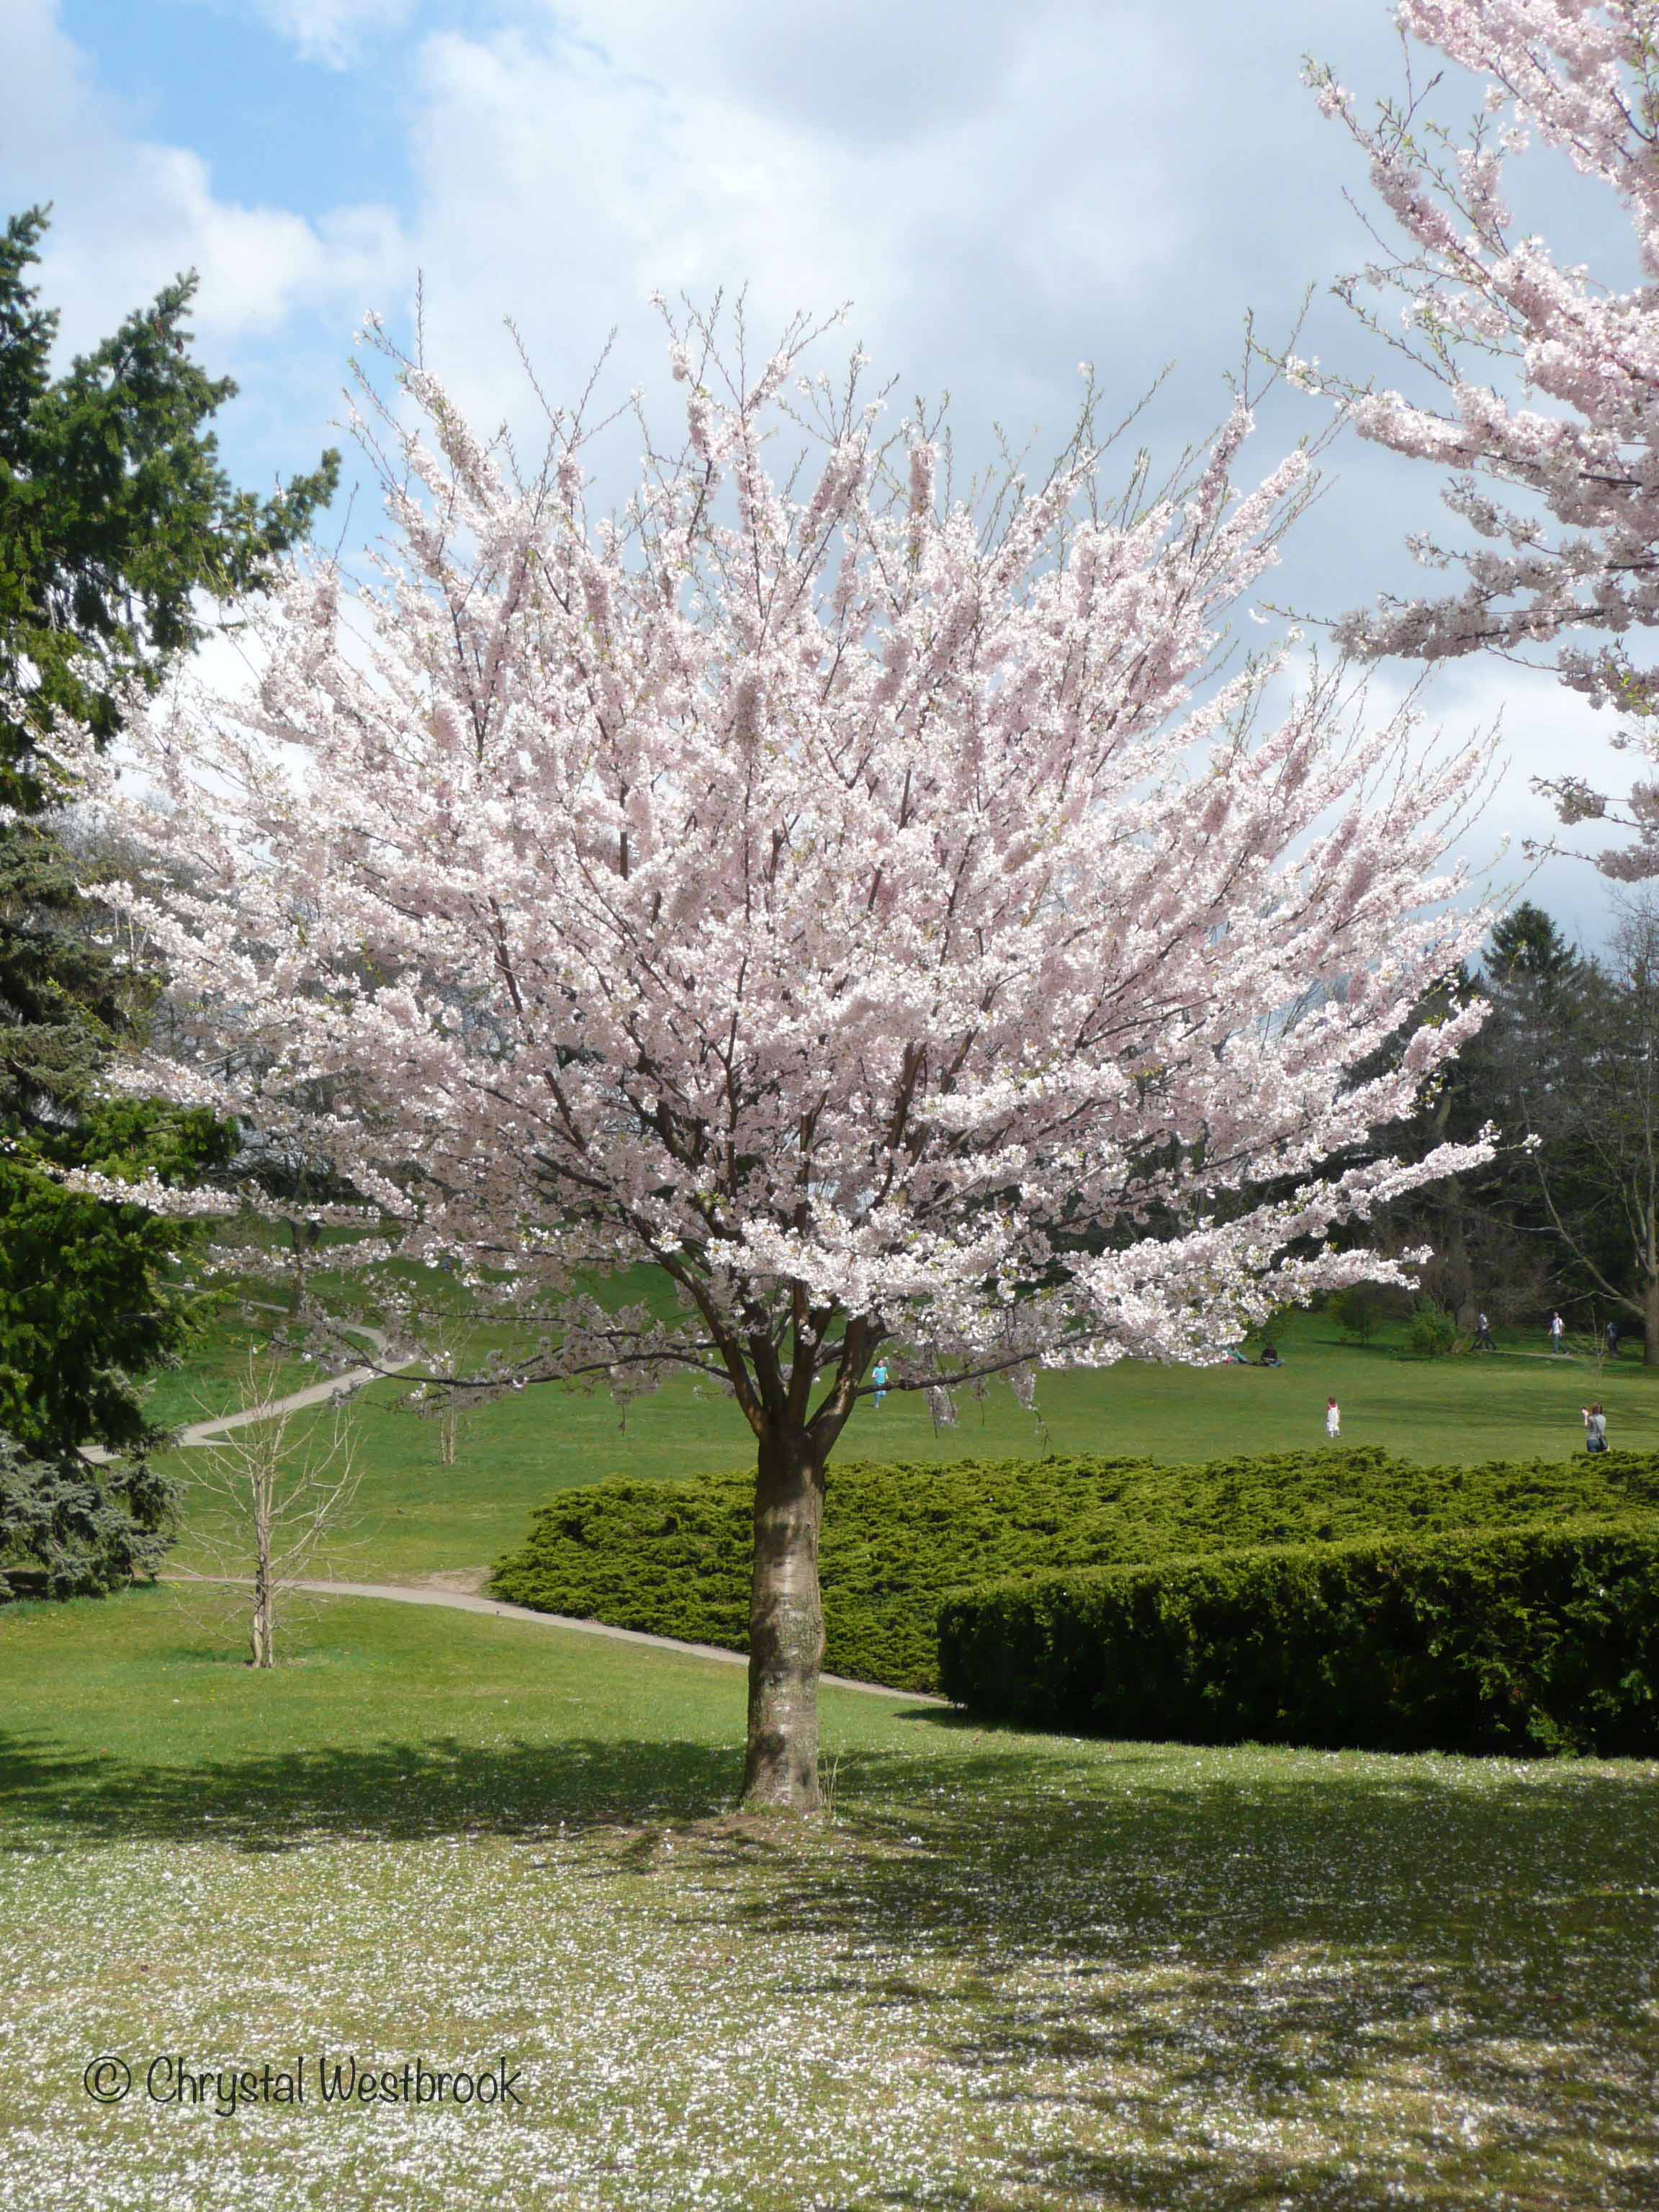 [IMAGE] Cherry tree in blossom